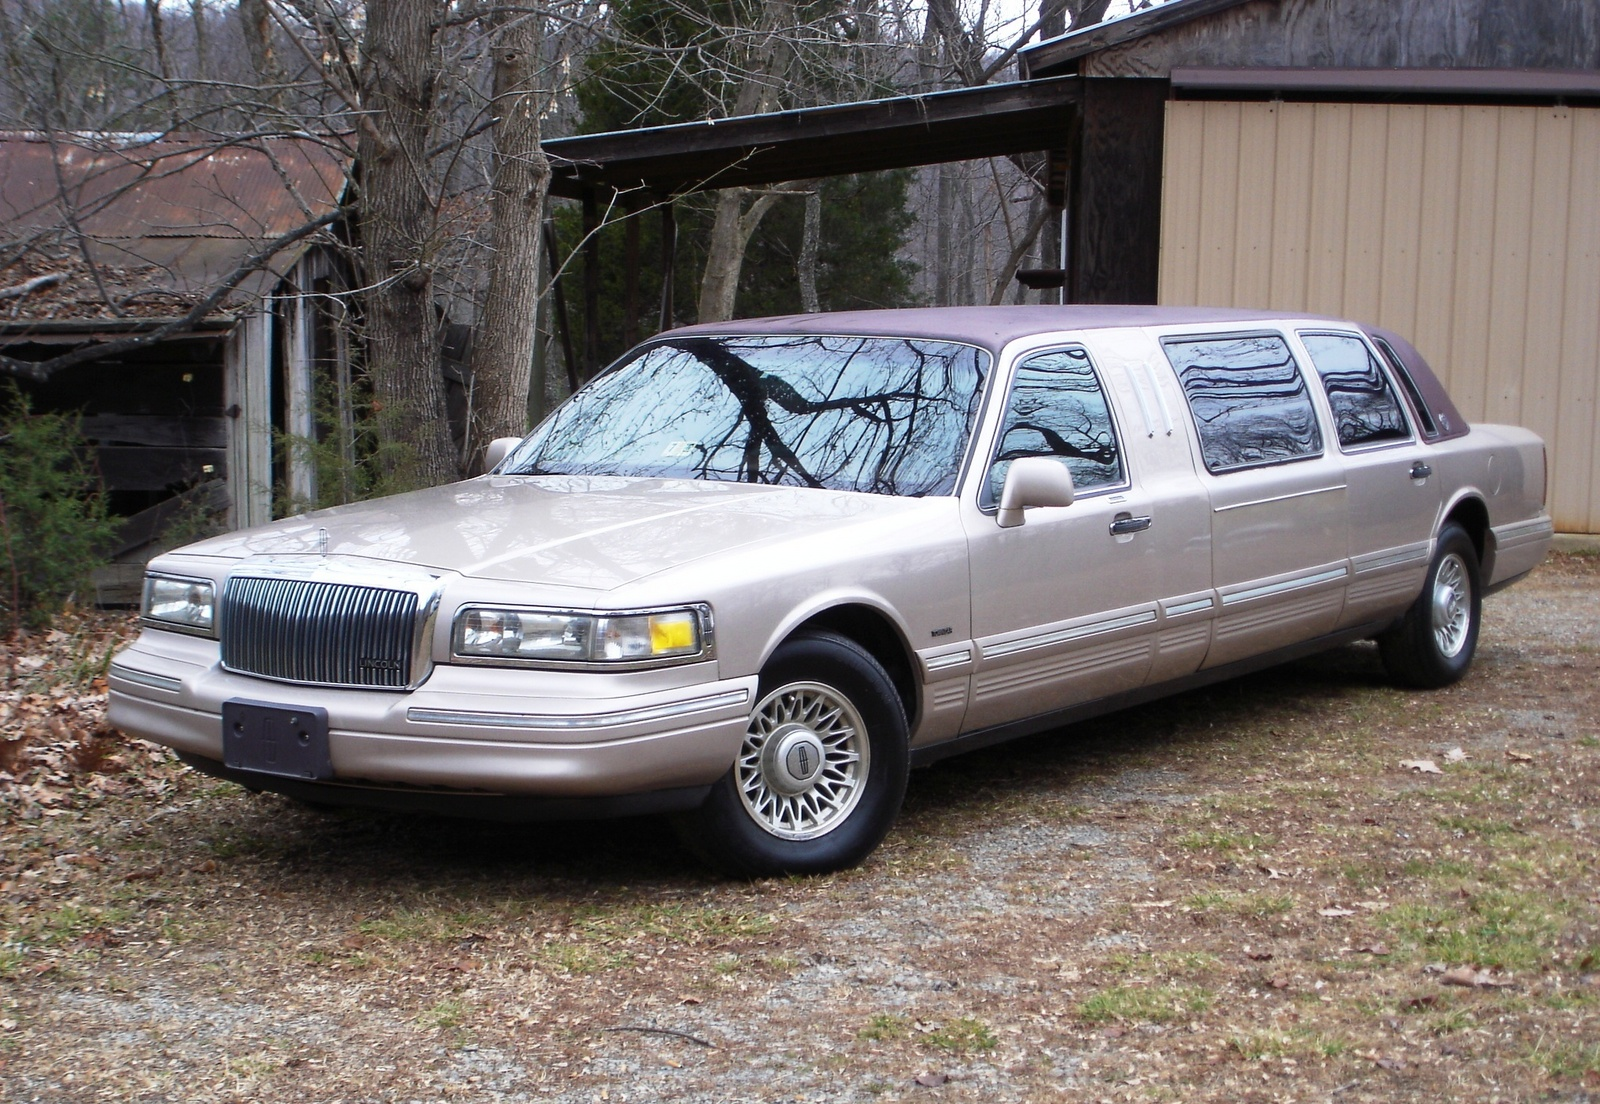 96 lincoln town car reviews related keywords 96 lincoln town car reviews long tail keywords. Black Bedroom Furniture Sets. Home Design Ideas